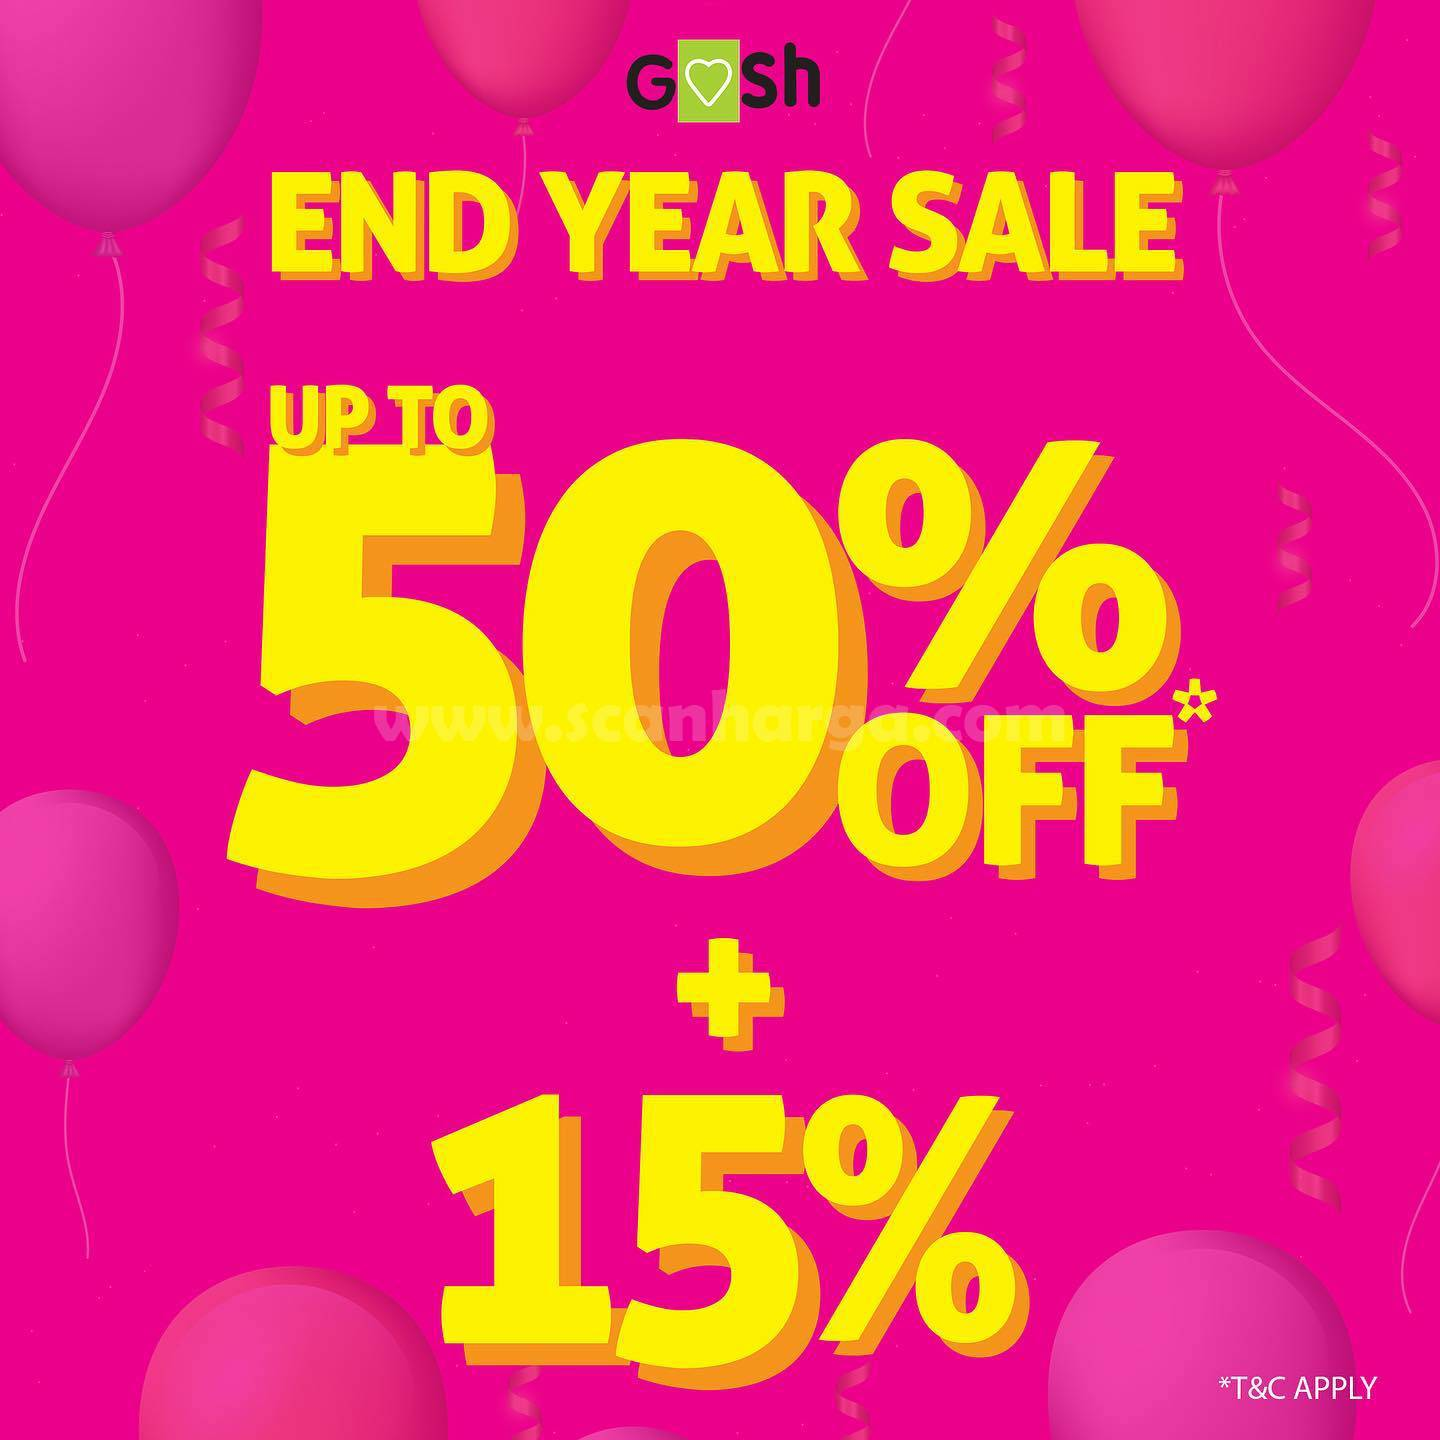 Gosh Shoes End Year SALE Promo Disc. Up To 50% + 15% Off